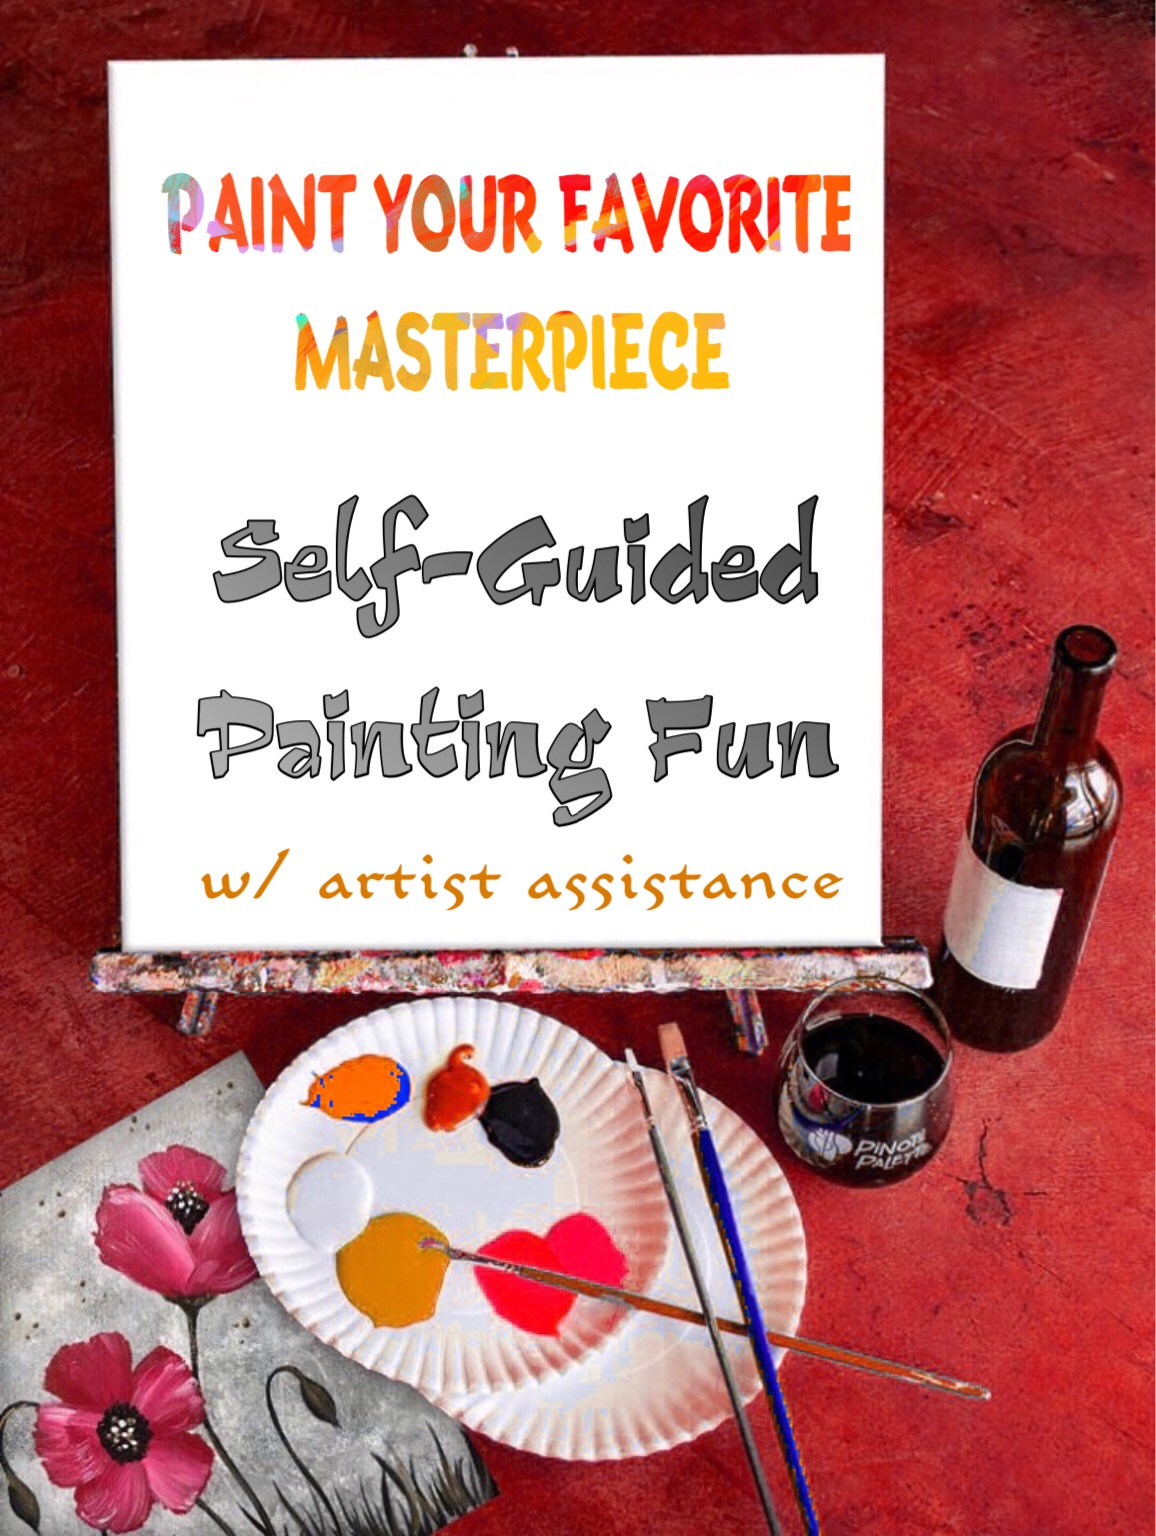 Paint Your Fav! Reservations Req'd